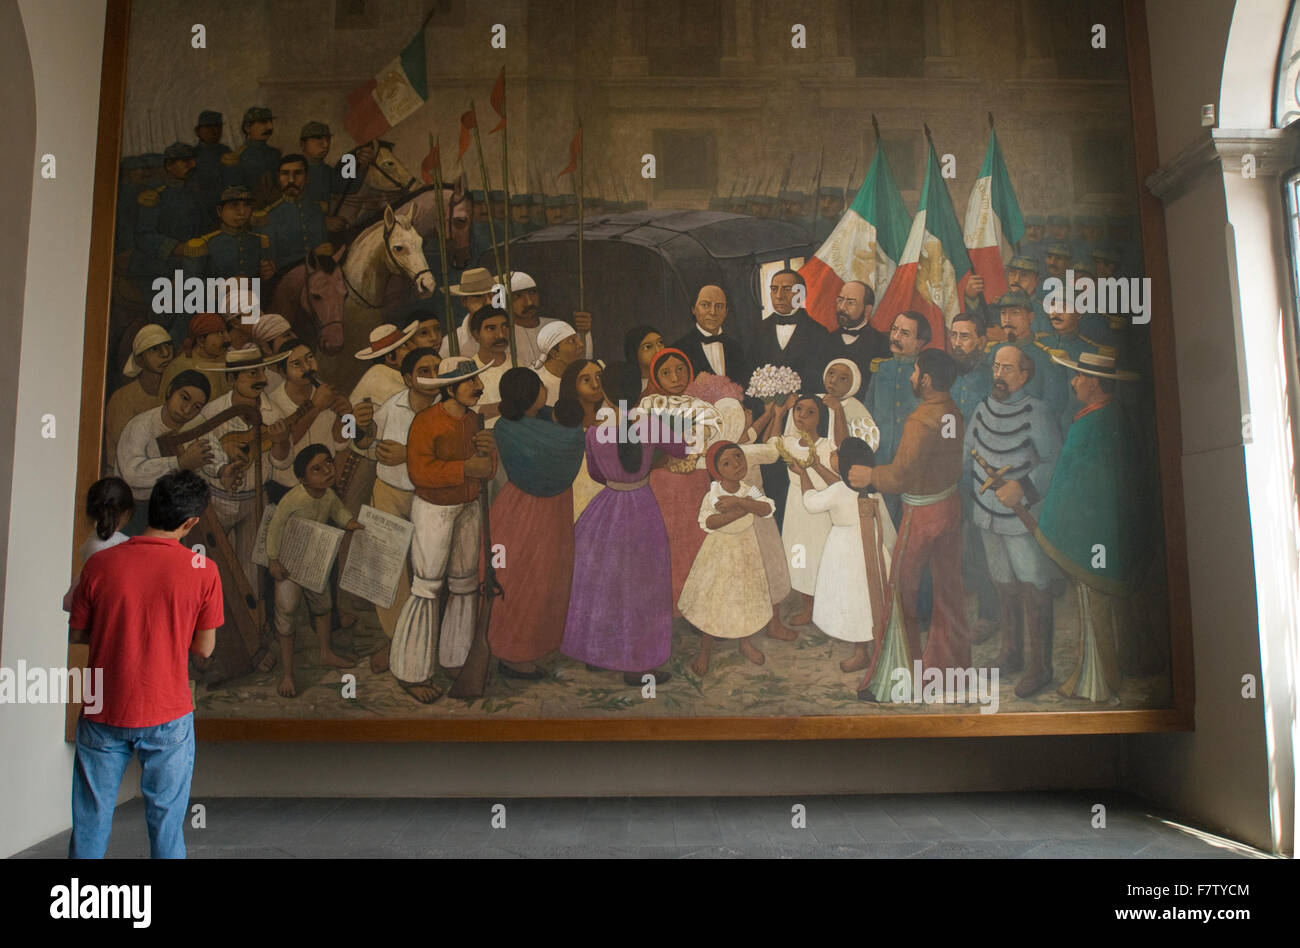 A. Gonzalez Orozco painting in the Museum of National History in Chapultepec Castle, Mexico City. - Stock Image